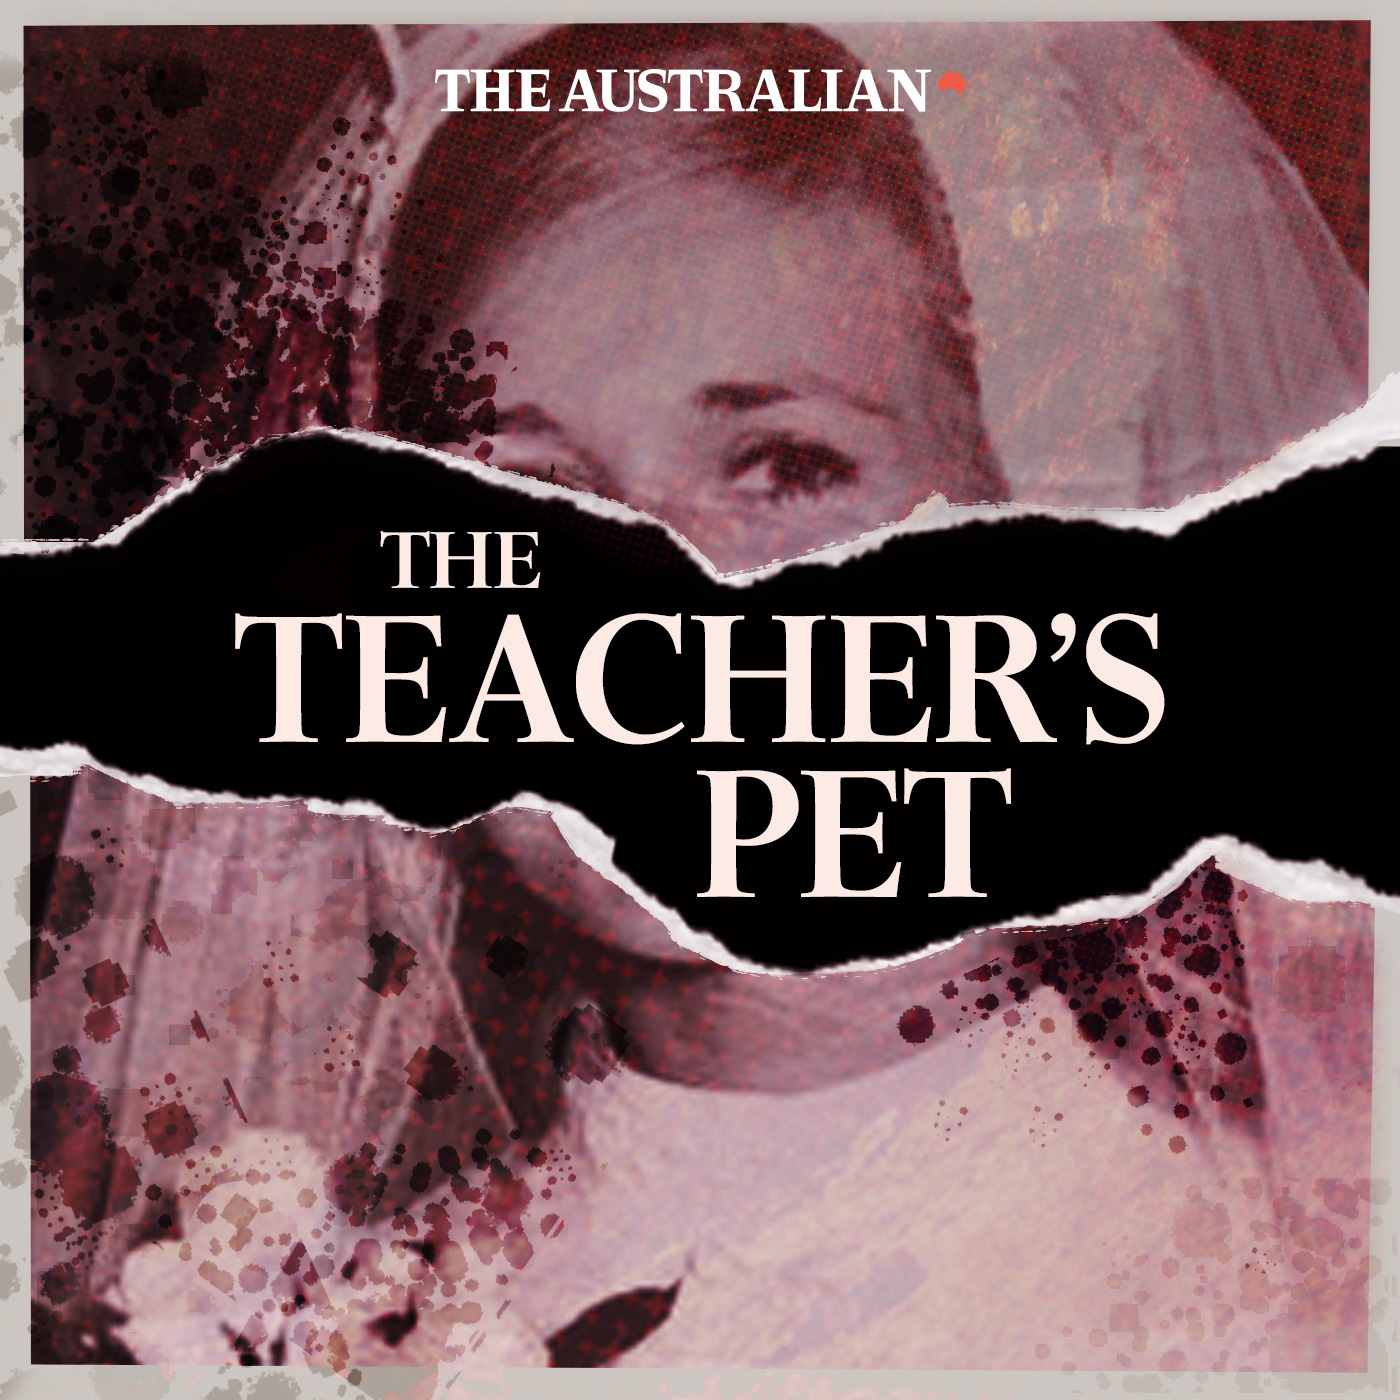 The teachers pet podcast review.jpg